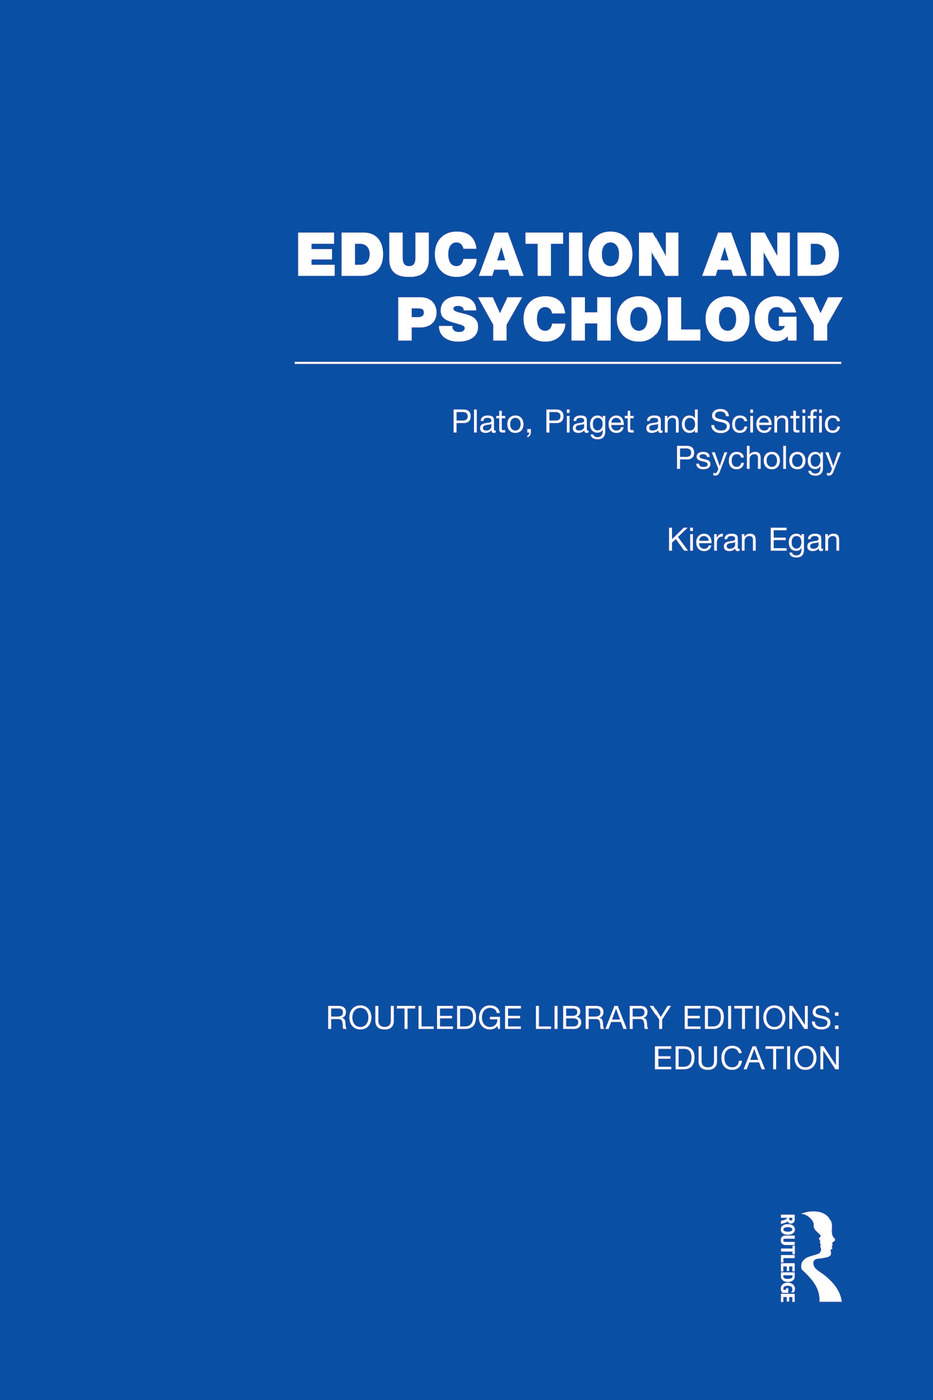 Education and Psychology